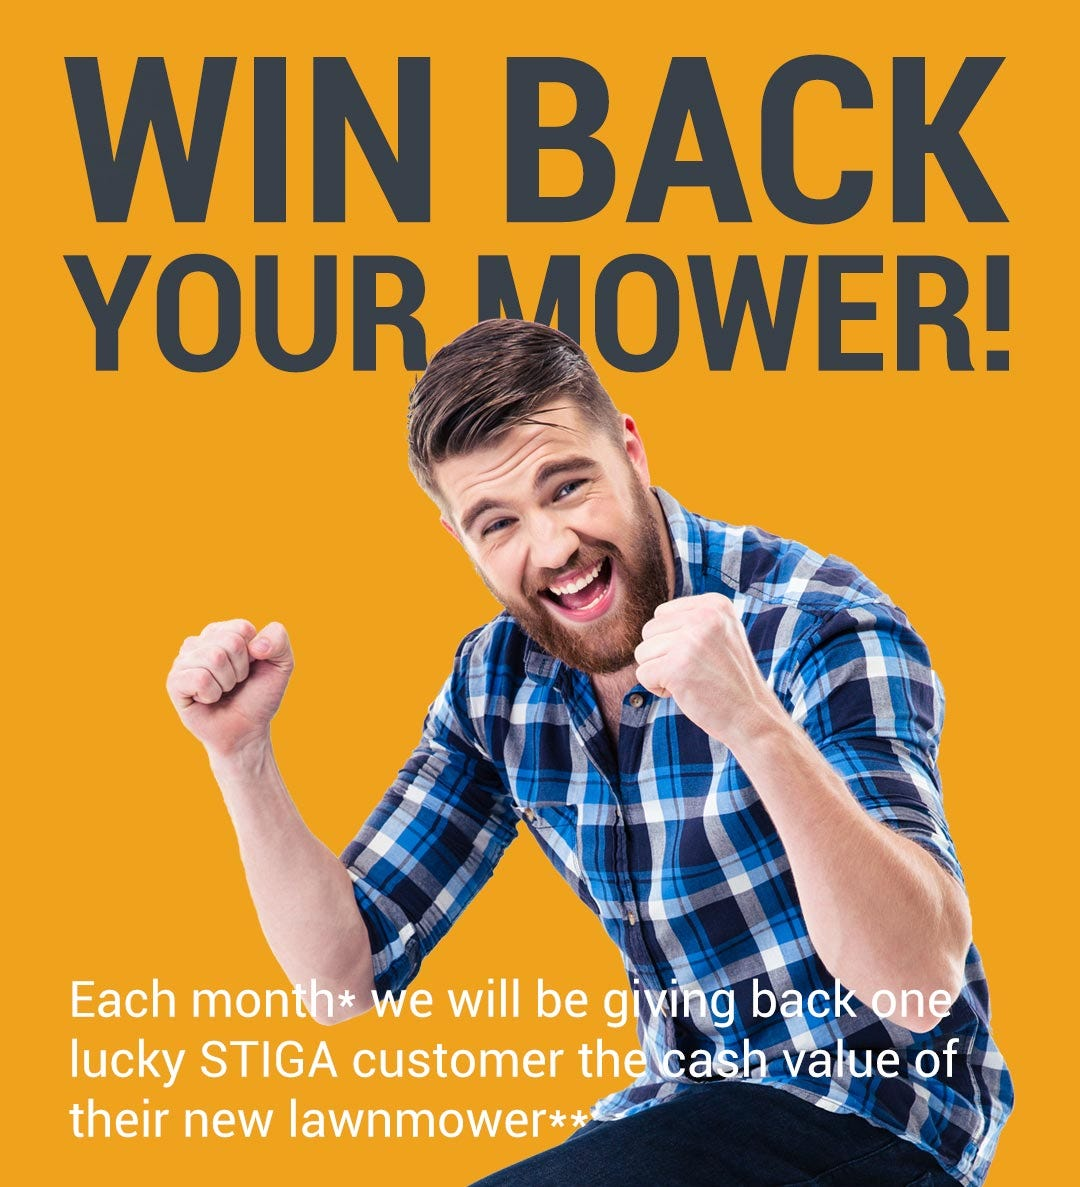 Win back your mower!